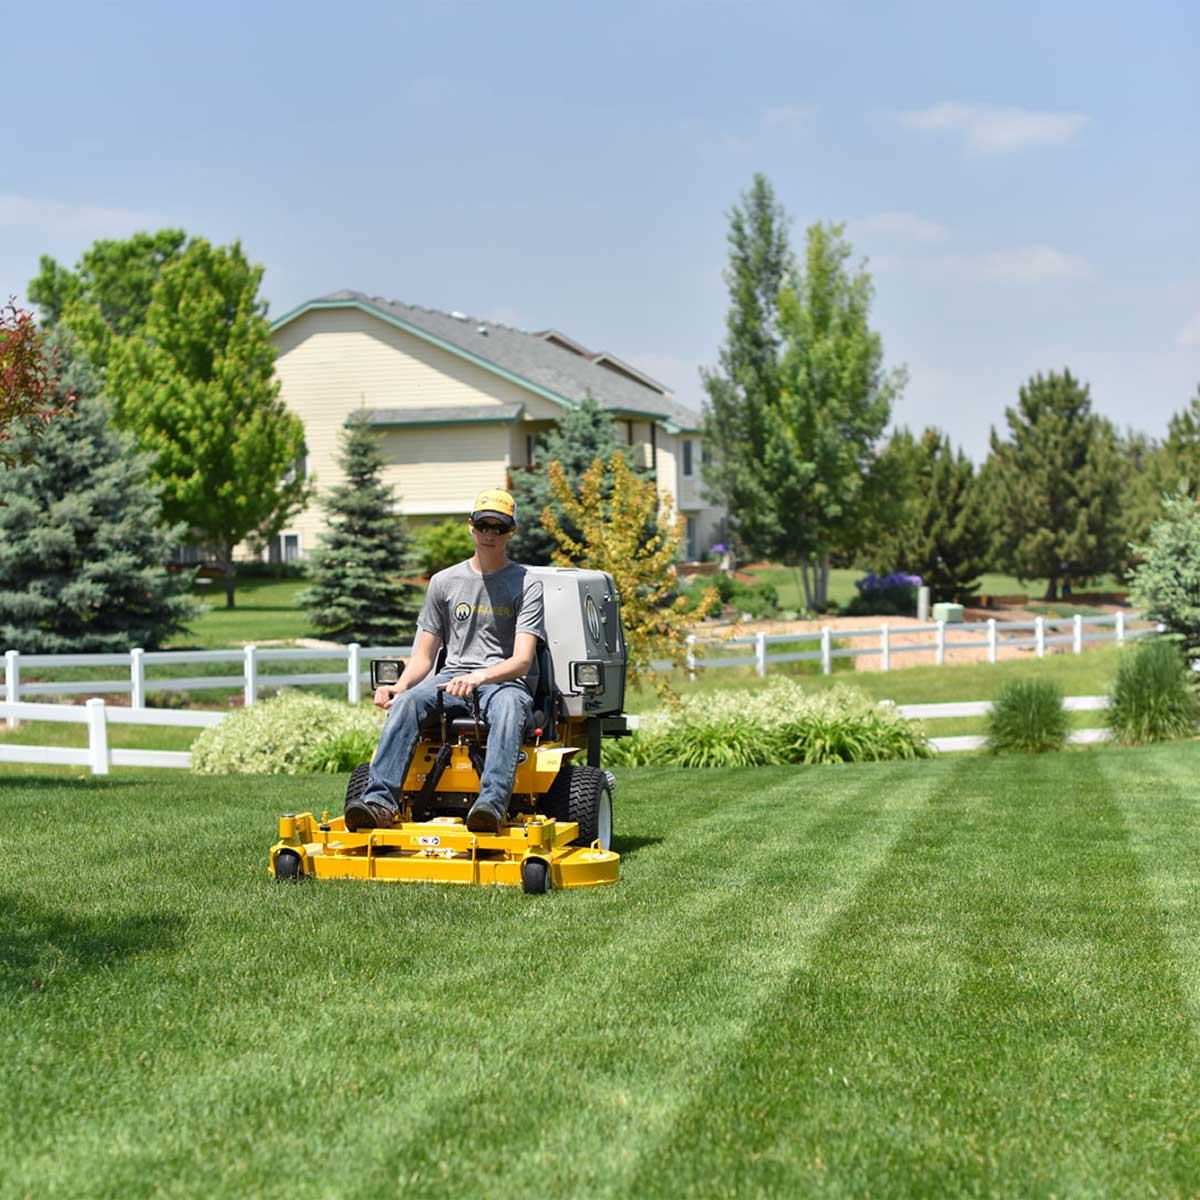 MC19 walker Mower - great lawn finish with the collection system